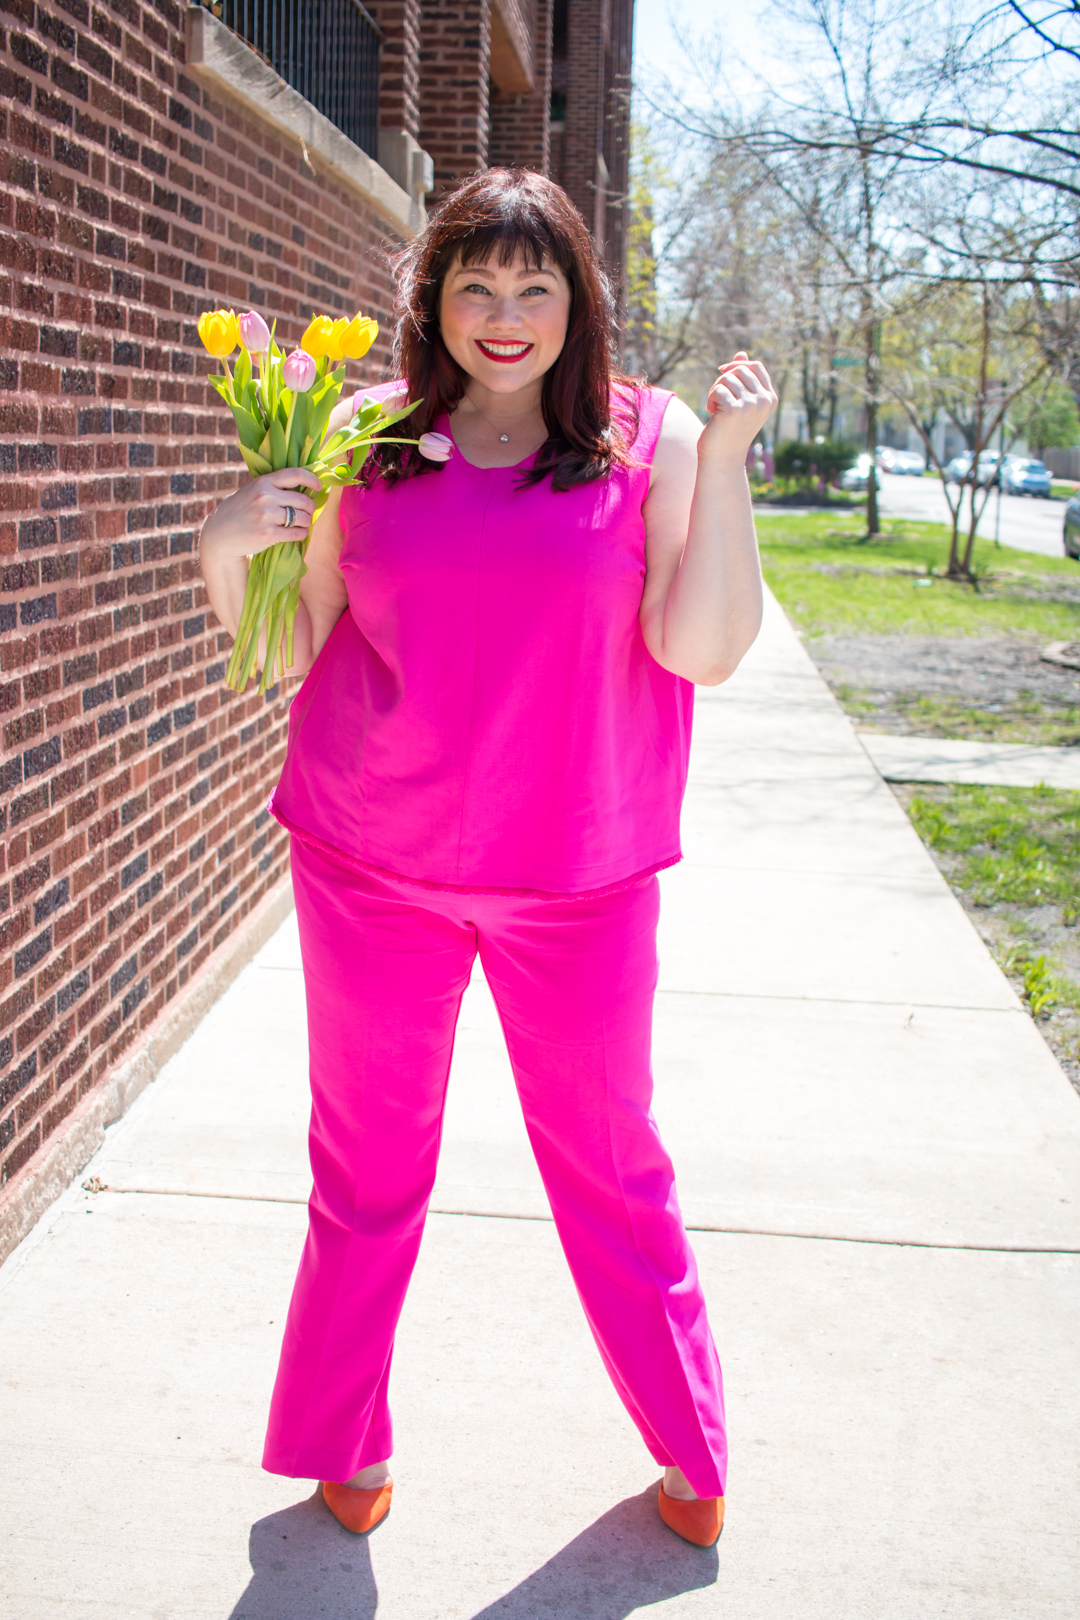 Plus Size Blogger wearing a pink suit from Victoria Beckham x Target collection